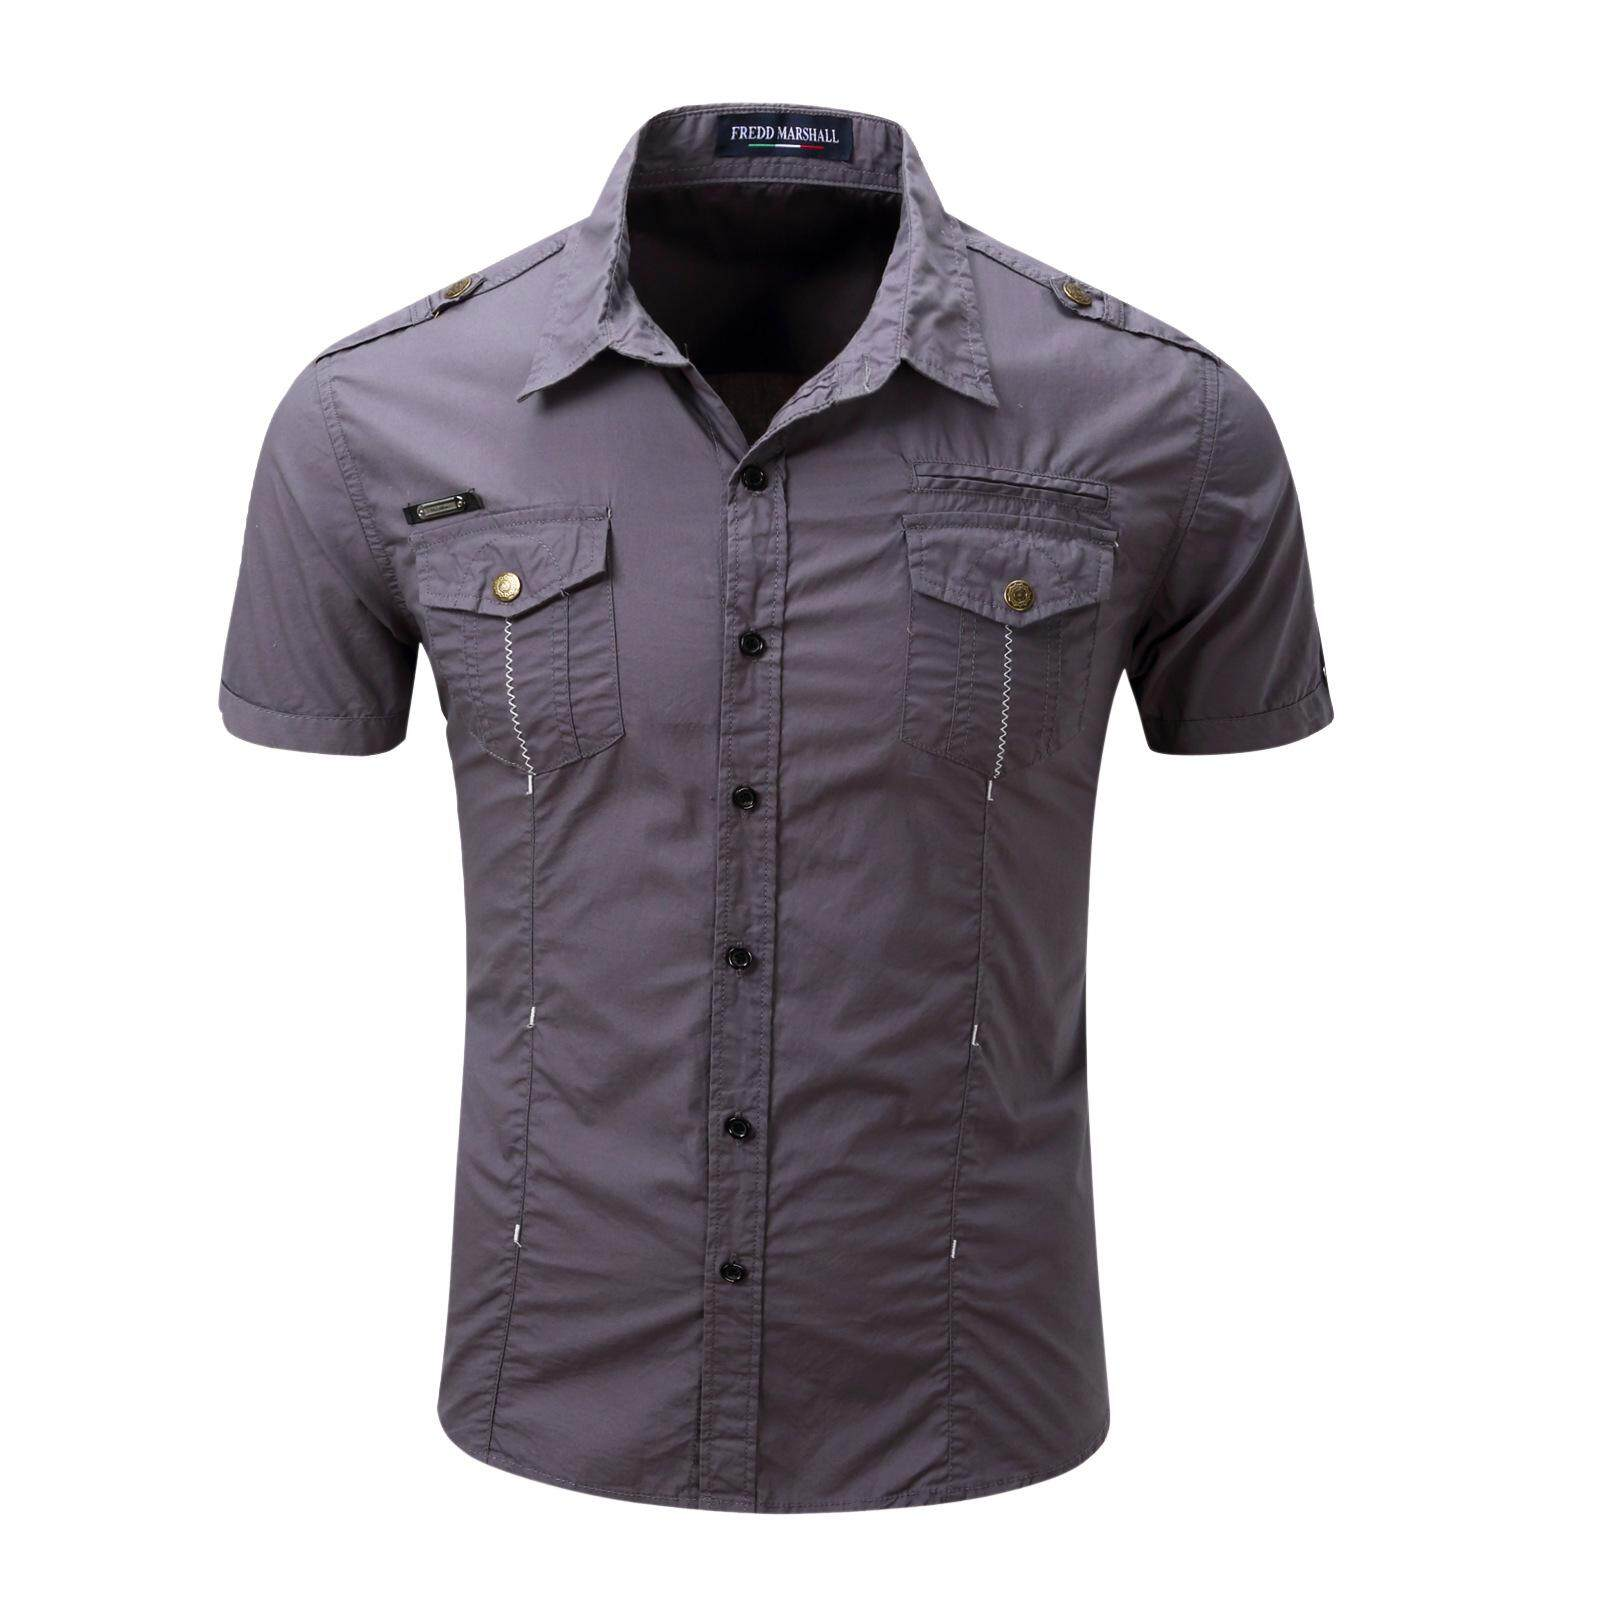 93aa0f7bd9f1 2019 New Arrive Men s Cargo Shirt Men Casual Shirt Solid Short Sleeve Shirts  Work Shirt with